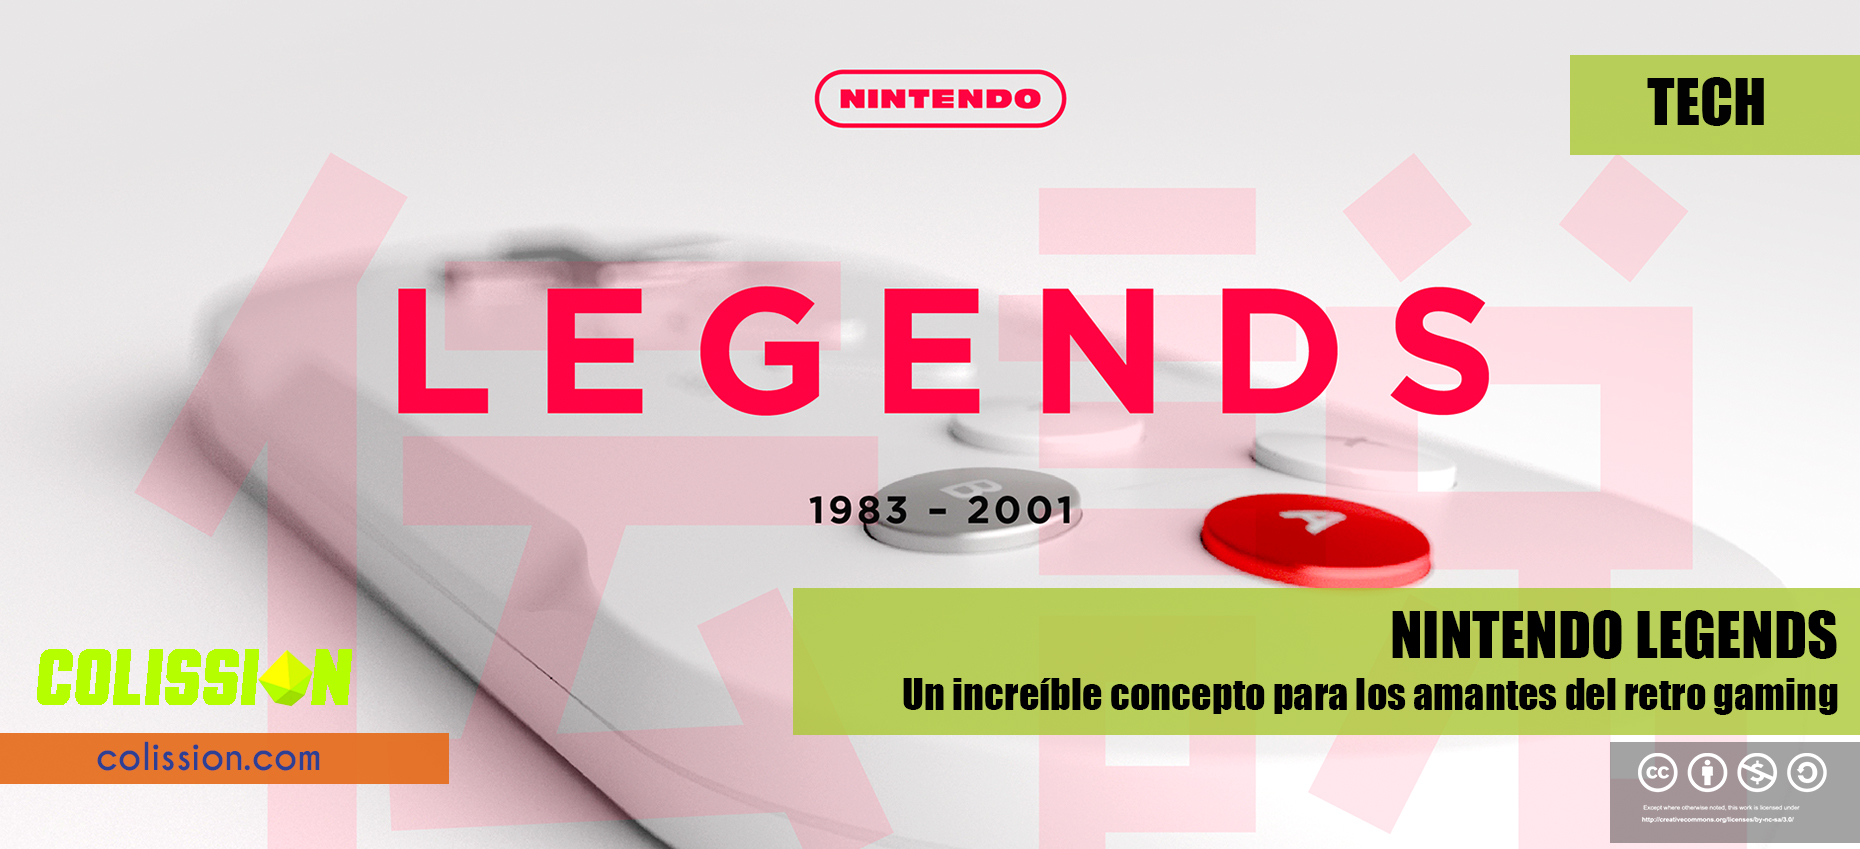 Nintendo Legends